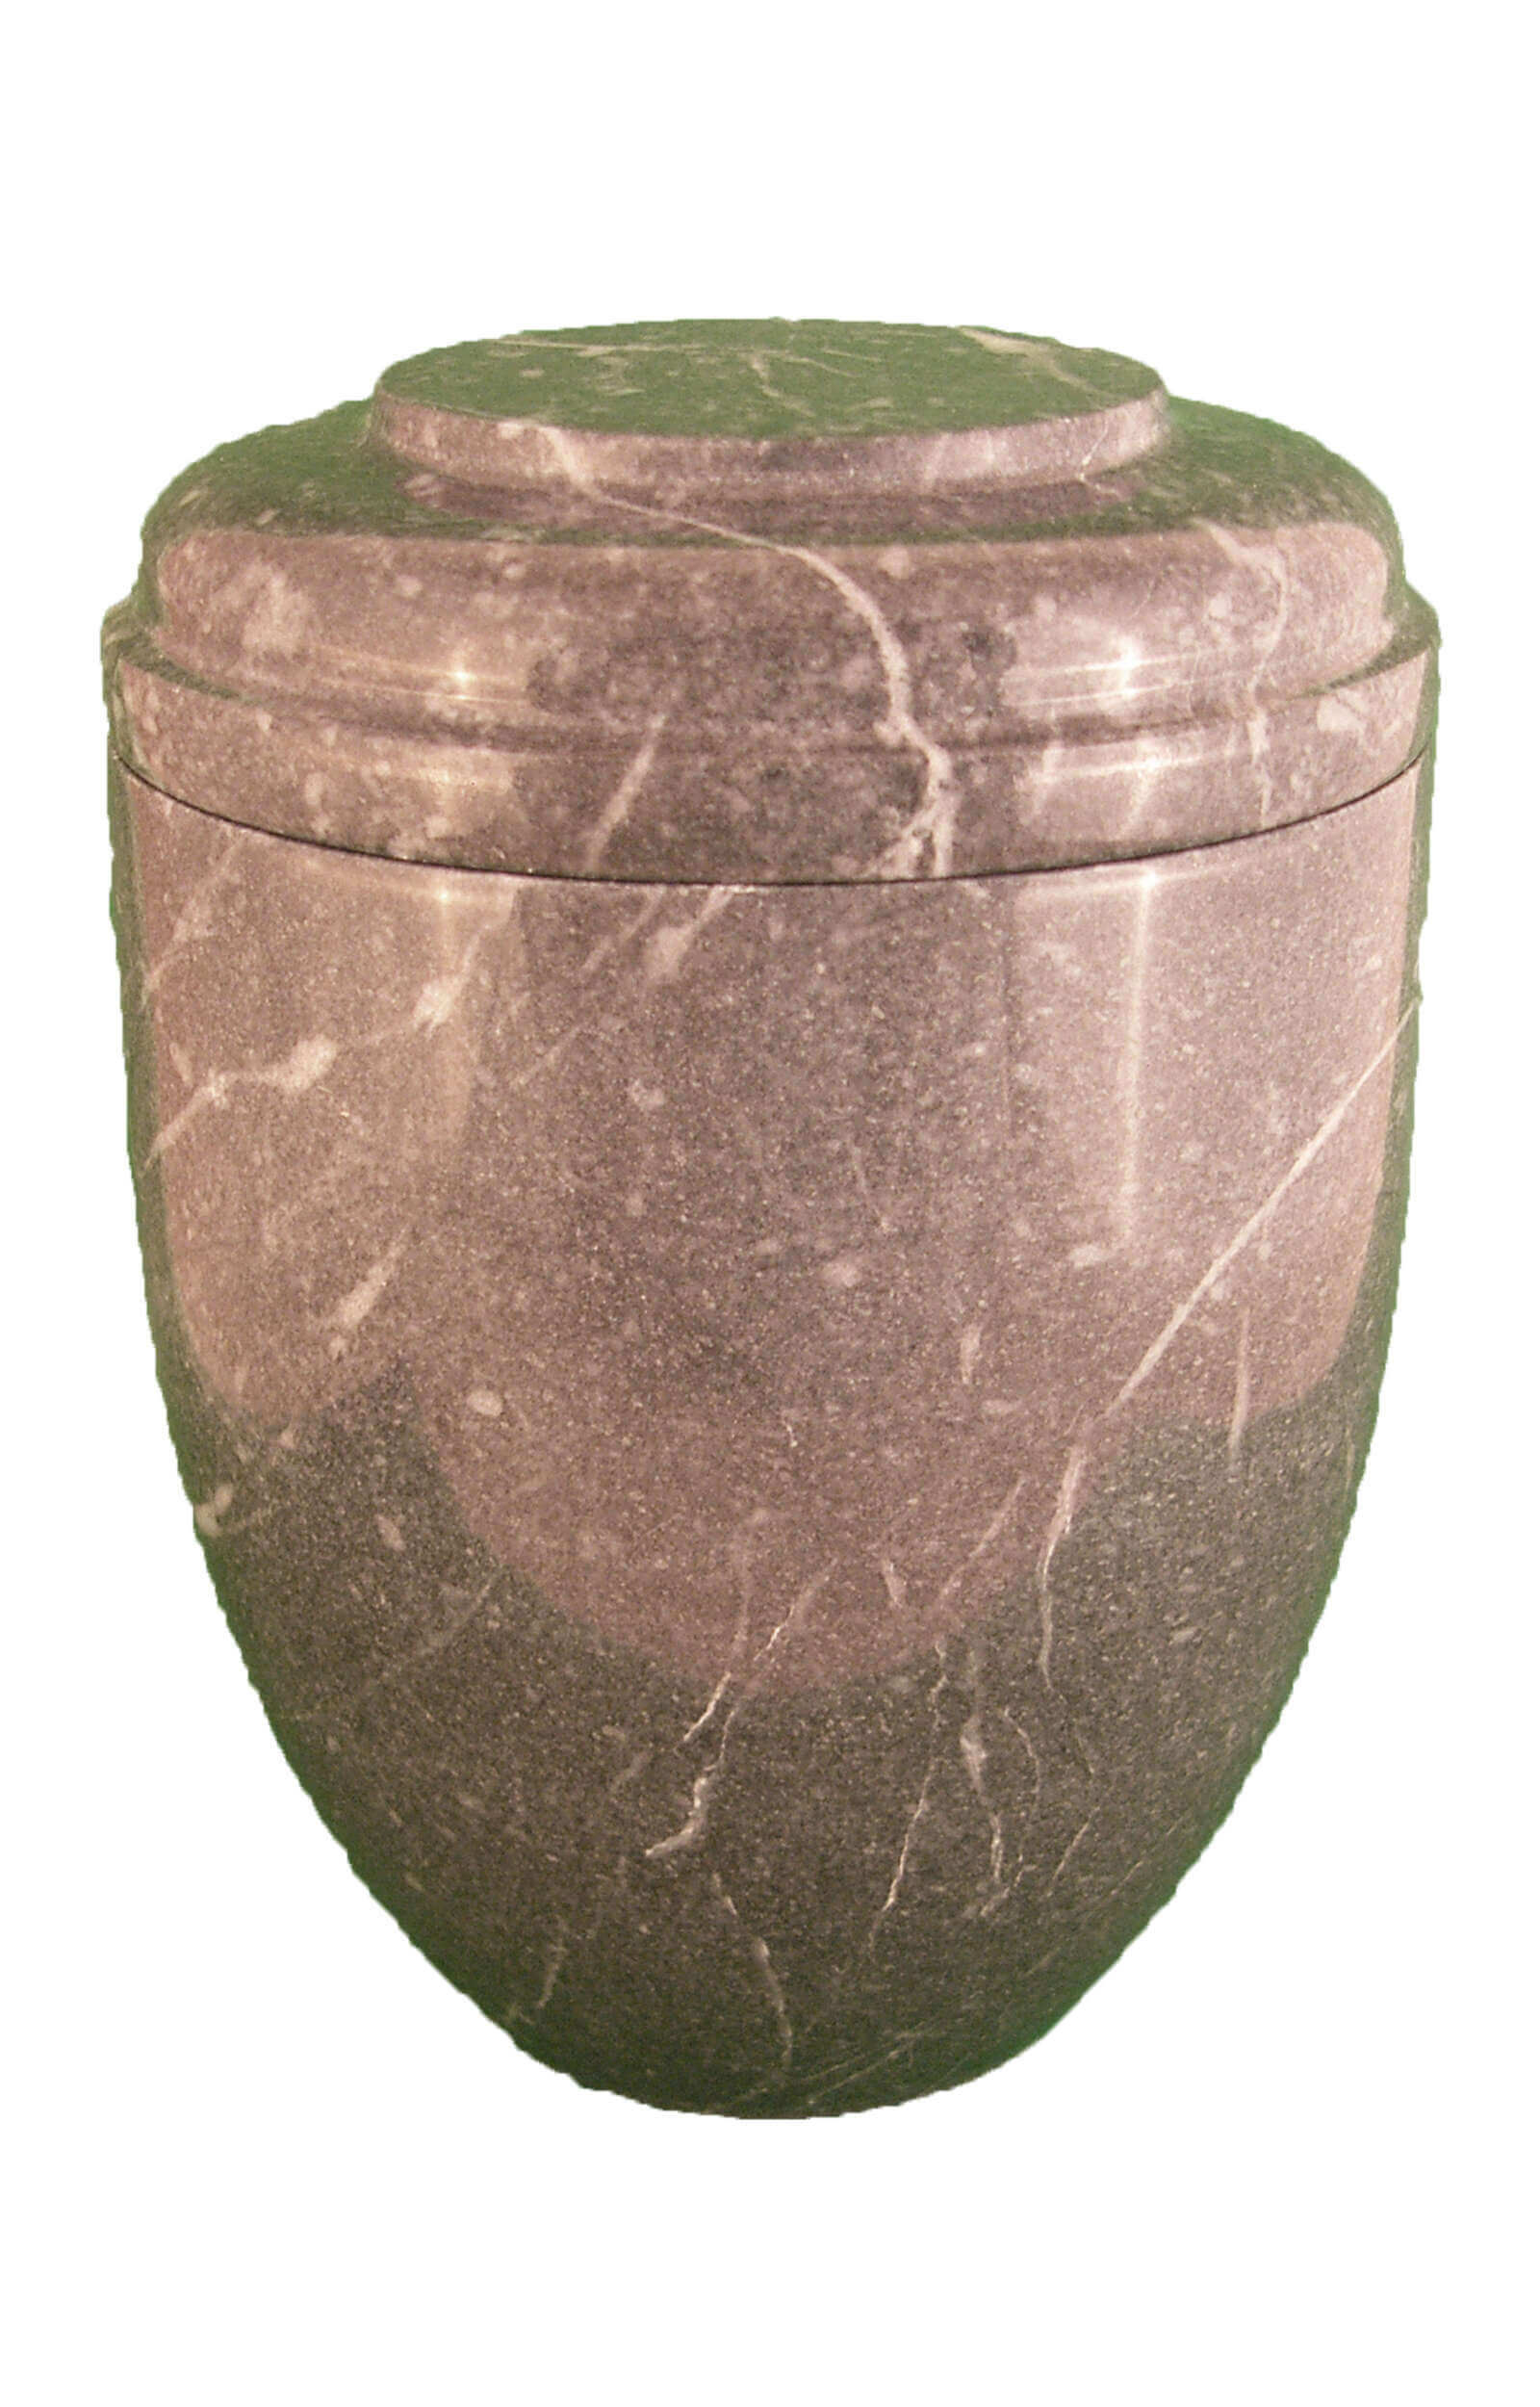 en MA2927 Zebra grey marbel urn for human ashes grey black round funeral urns on sale